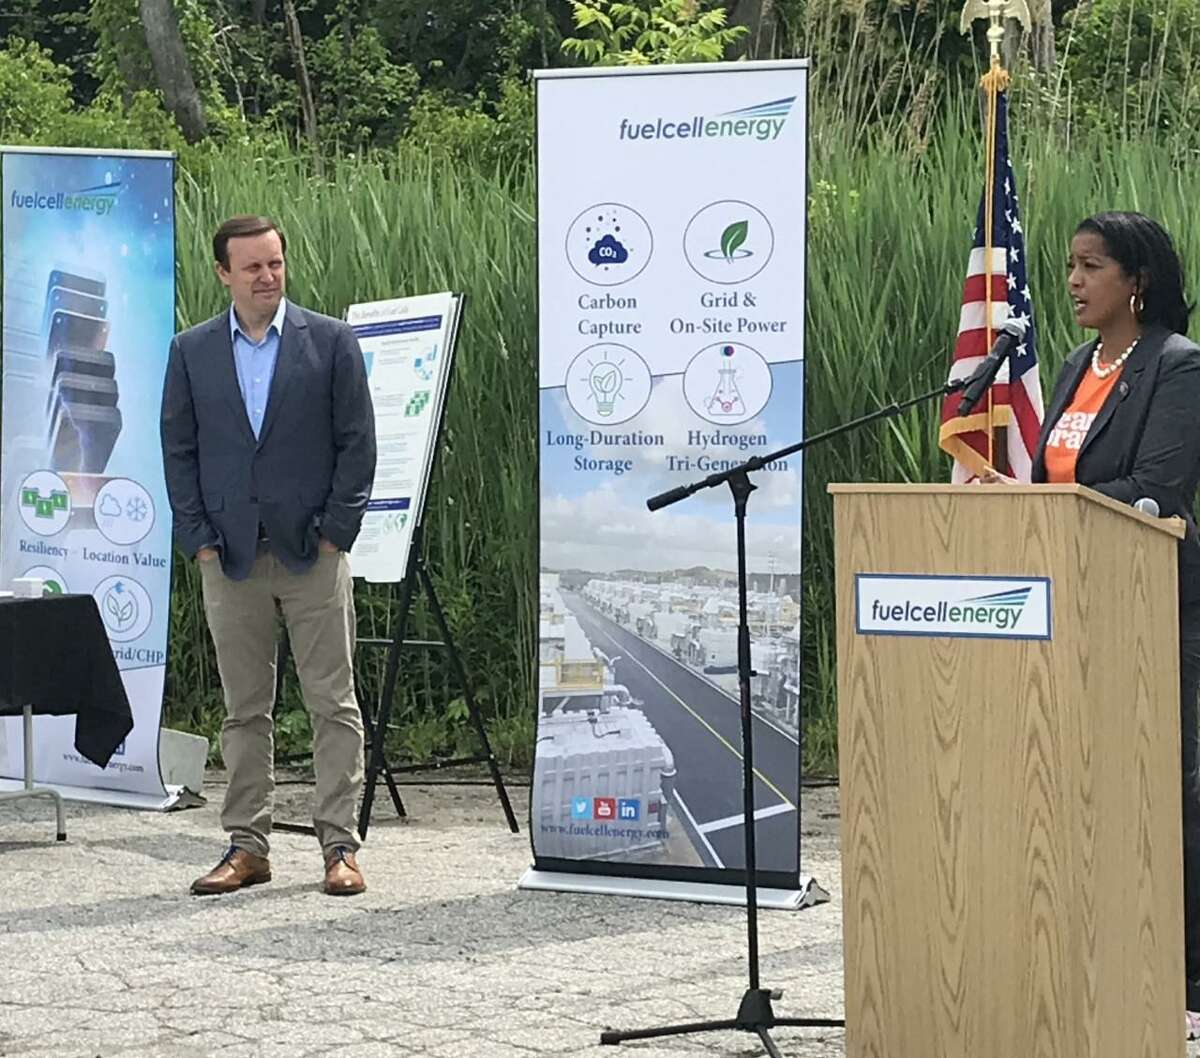 U.S. Representative Jahana Hayes (D-5) addresses workers at FuelCell Energy in Danbury on Friday as U.S. Senator Chris Murphy looks on. The two lawmakers toured the company's headquarters and research facility.